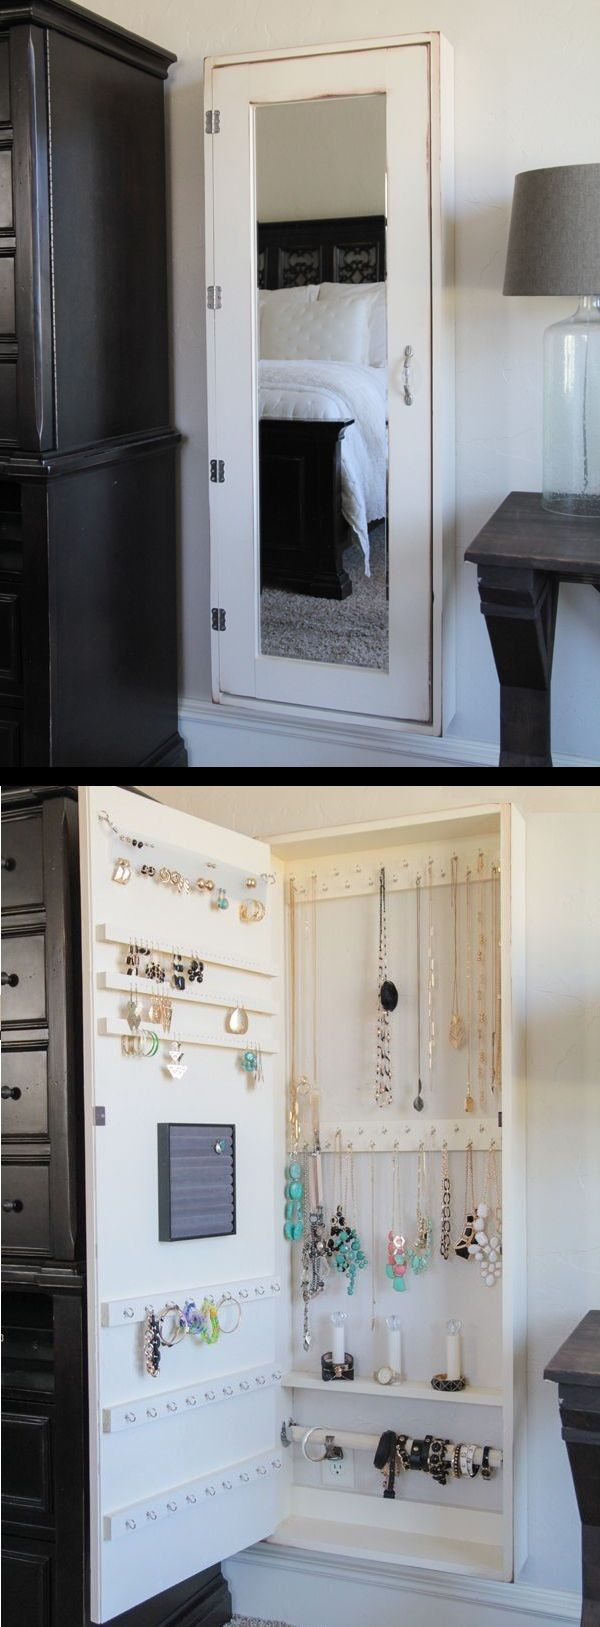 Behind katie's bedroom door. 10 Diy Great Kitchen Storage Anyone Can Do 6